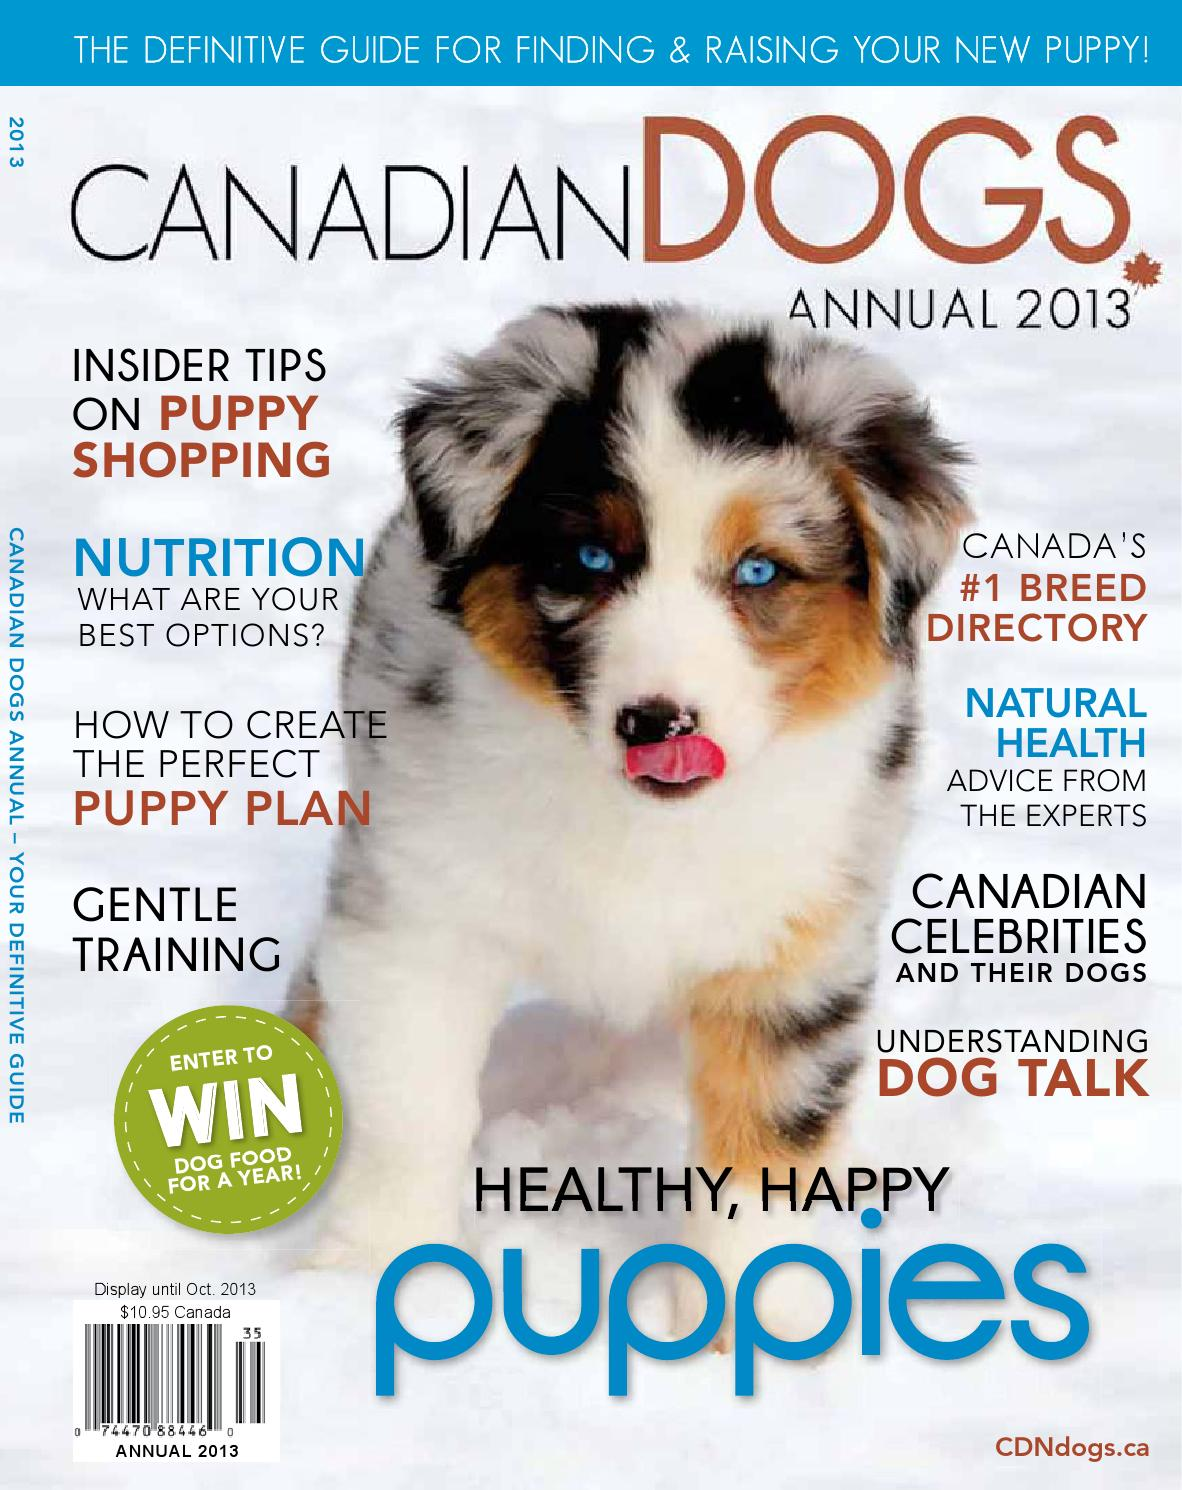 Canadian Dogs Annual 2013 by Kathleen Atkinson - issuu c06826d052a